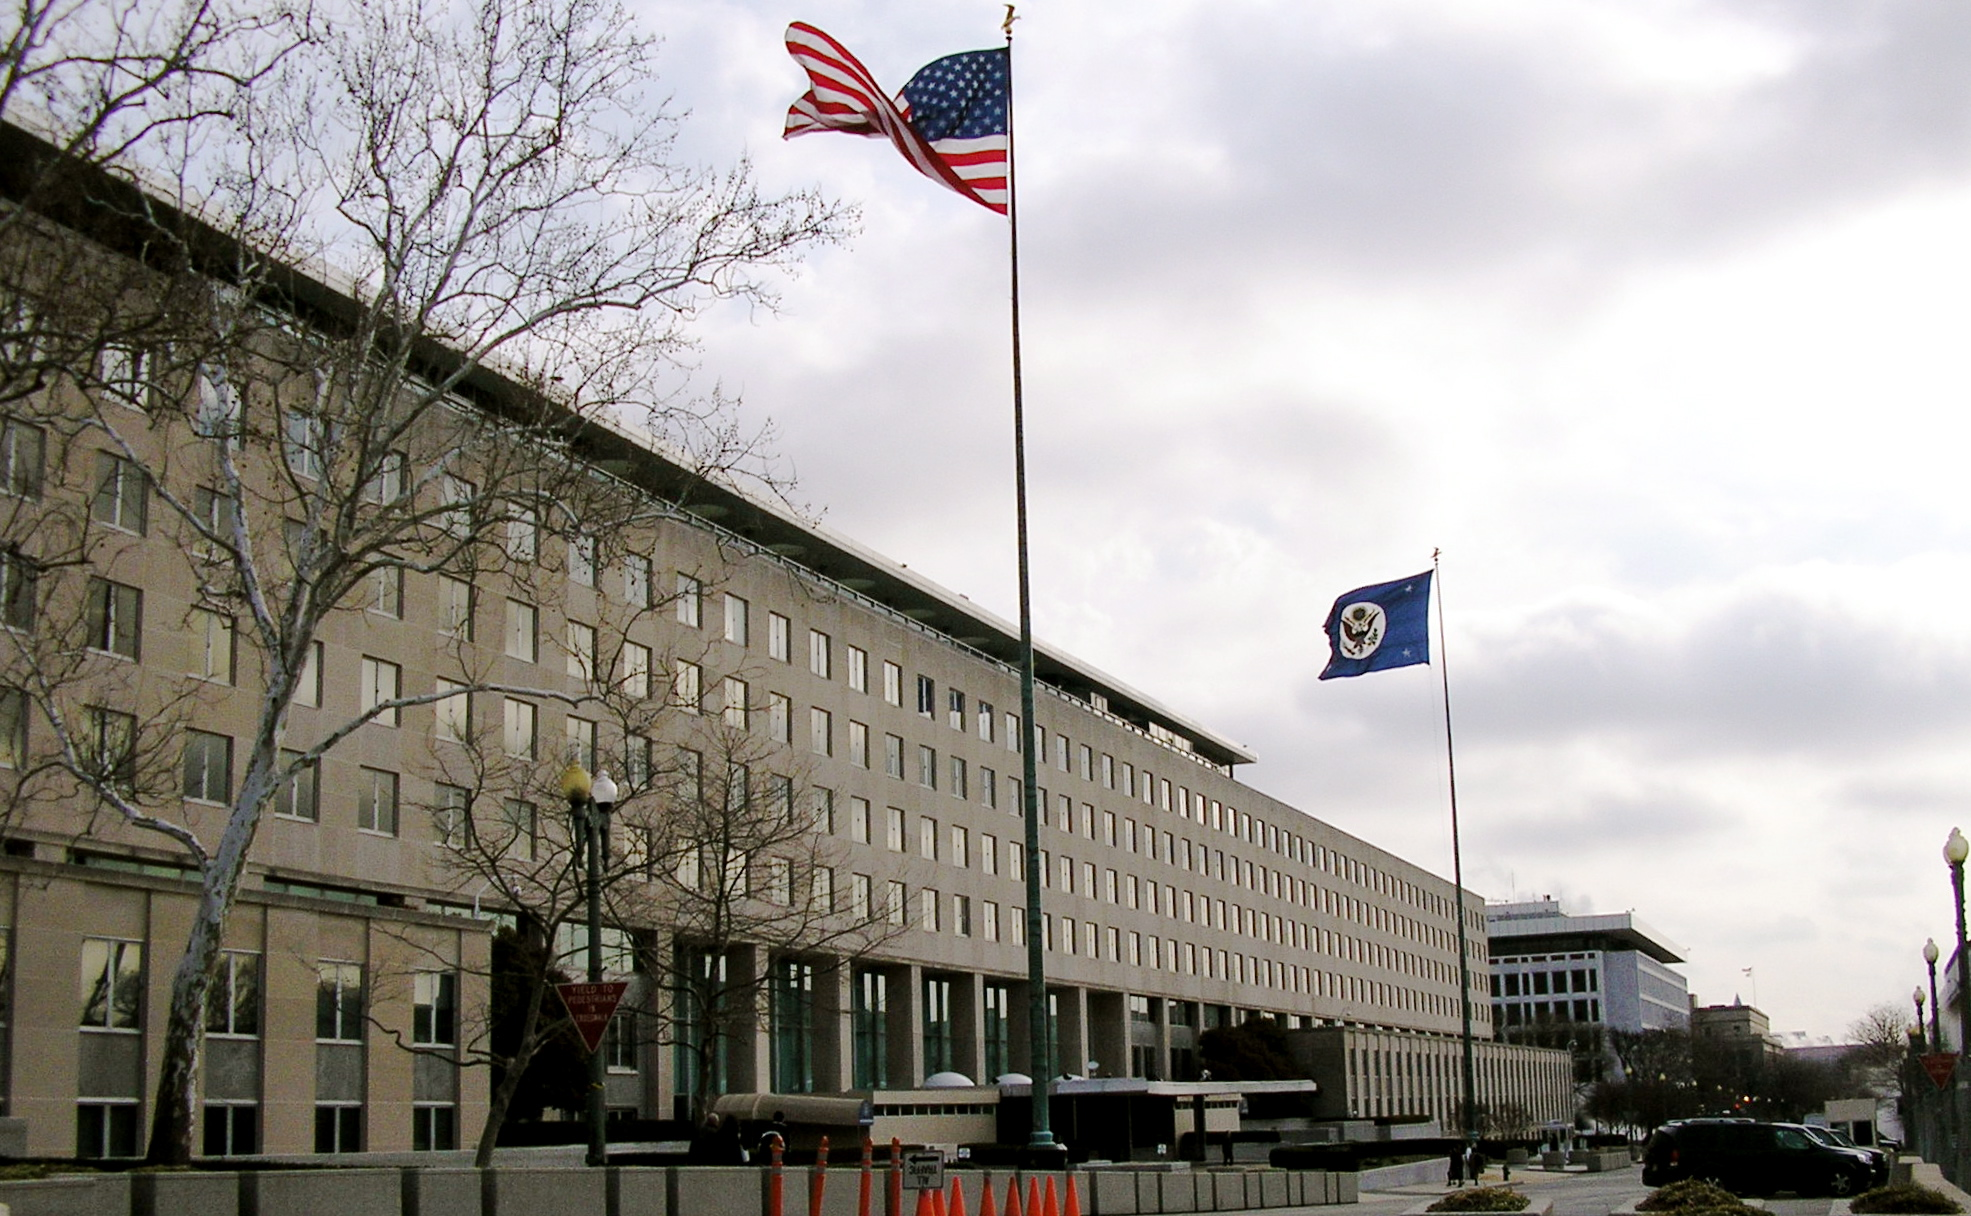 https://upload.wikimedia.org/wikipedia/commons/5/58/State_Department.jpg